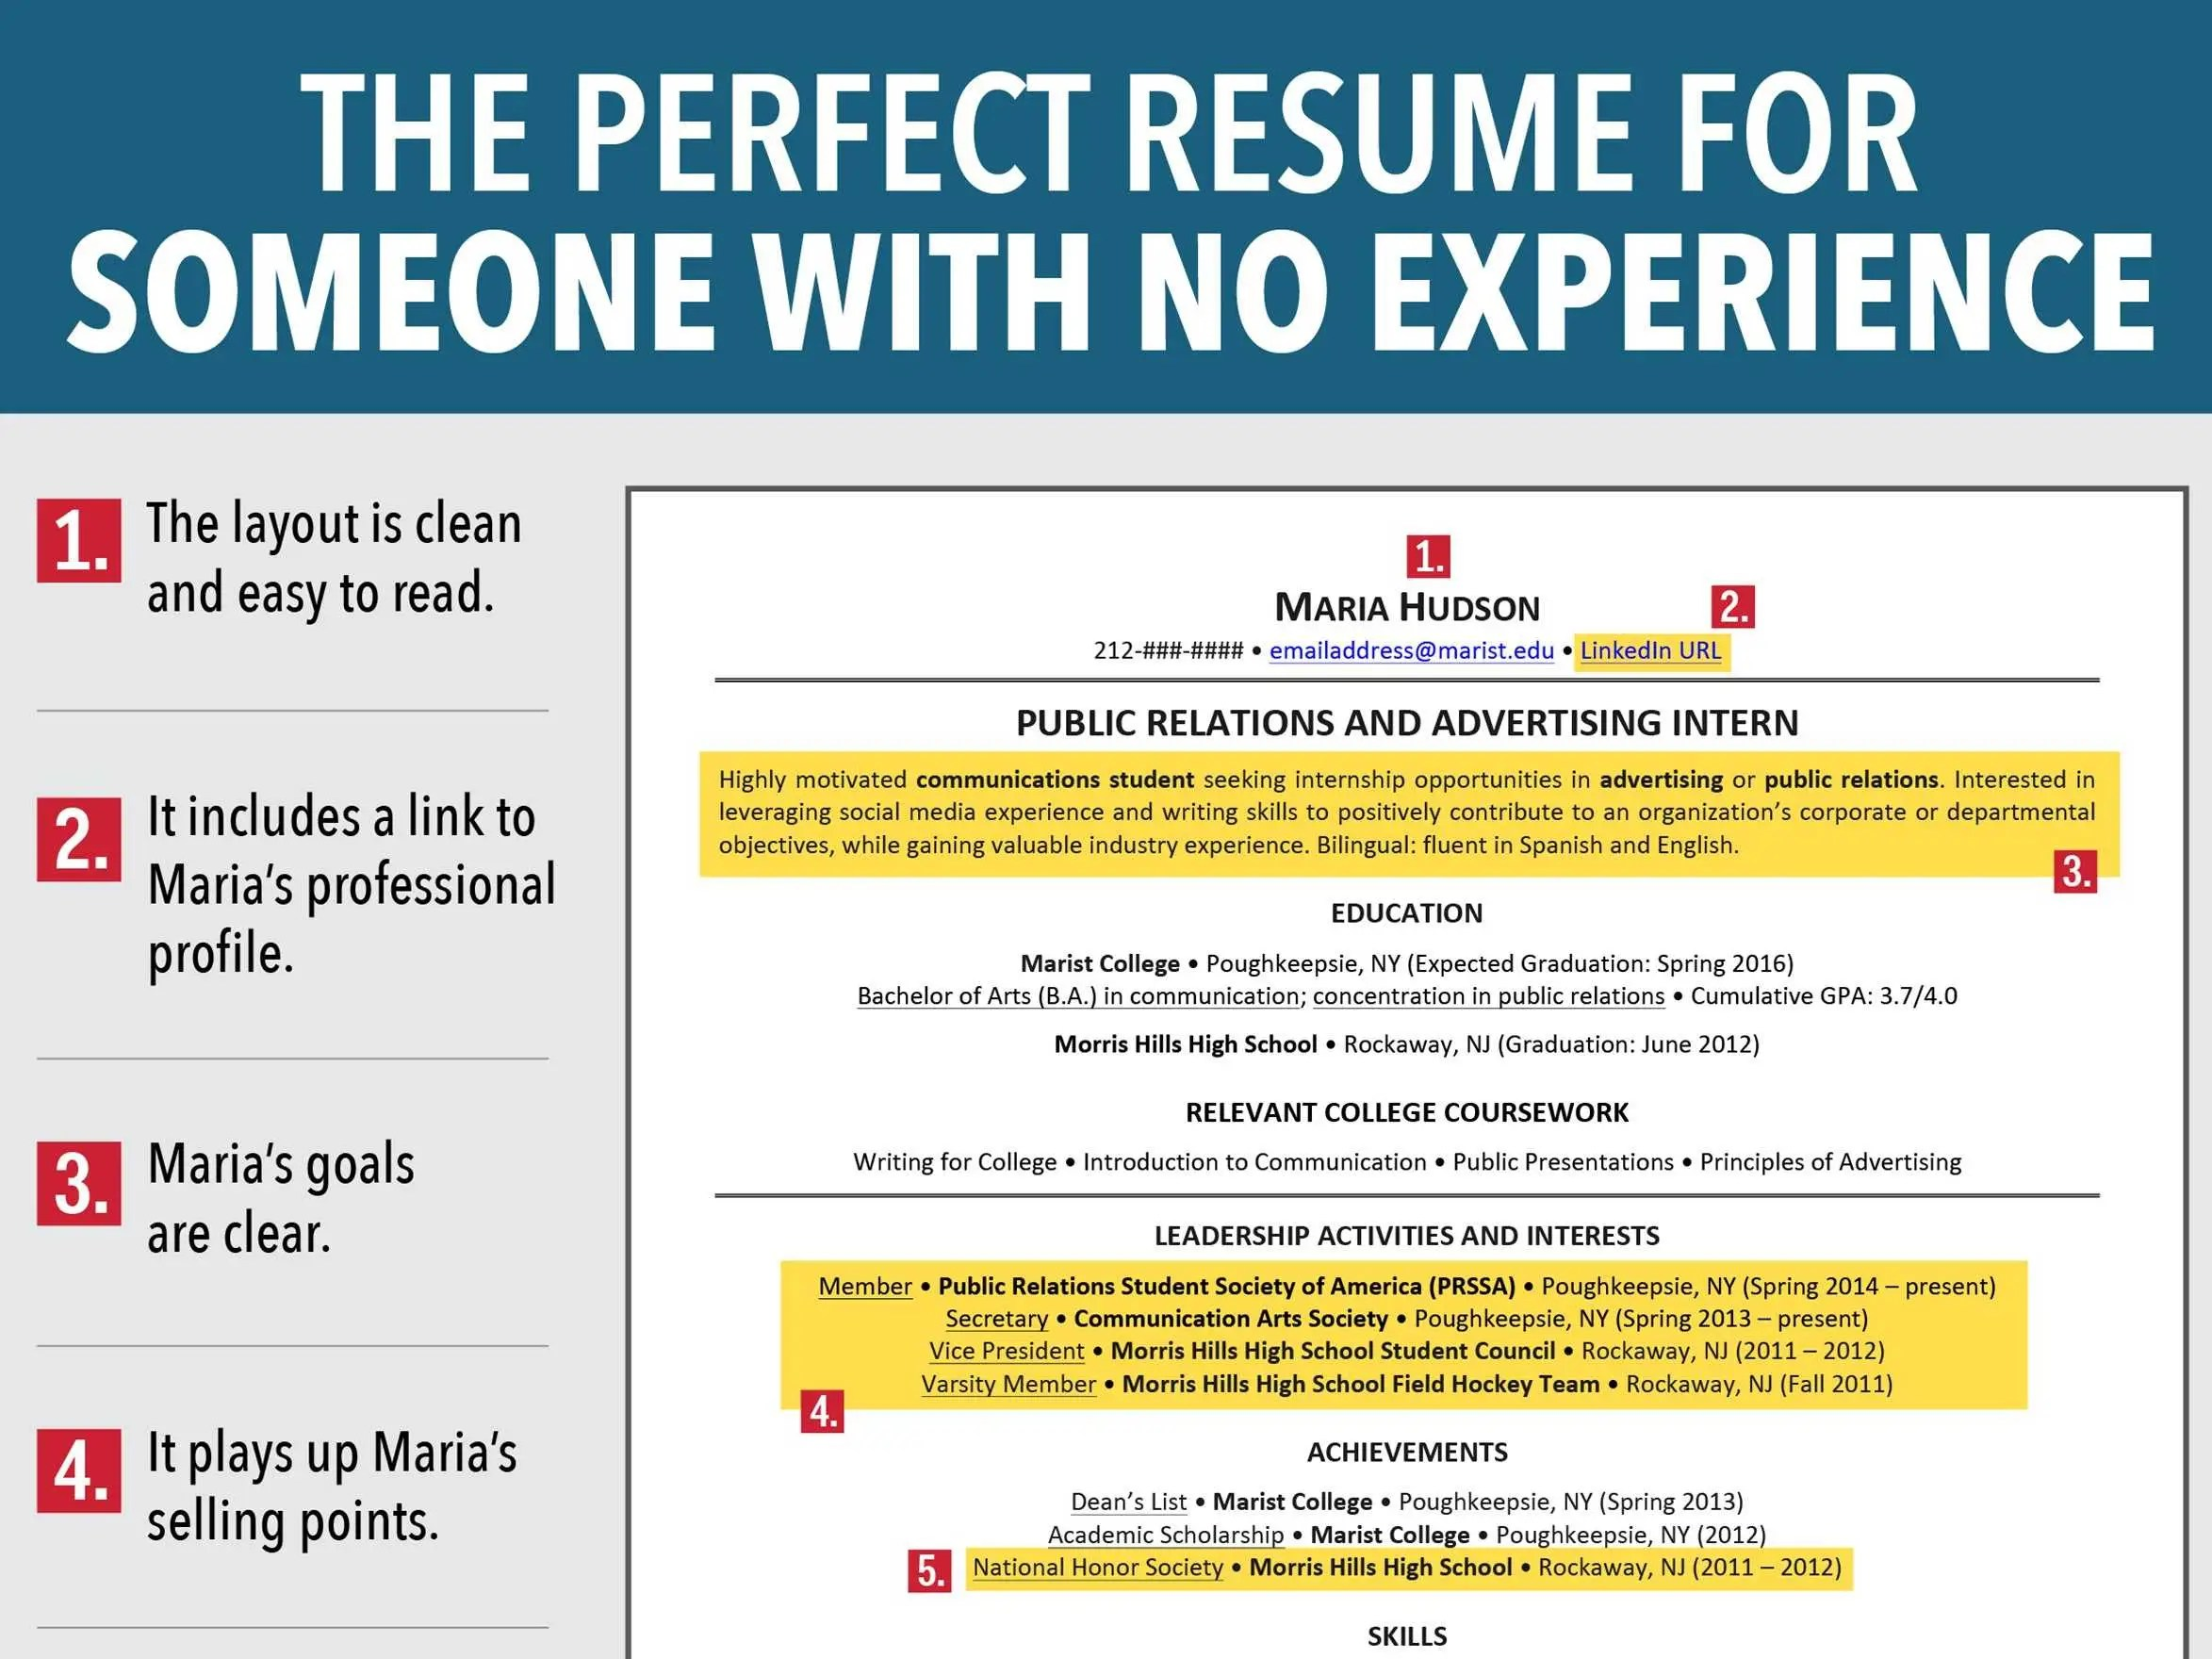 Resume How To Make A Perfect Supplyletterwebsite Cover In Resume Examples Perfect  Resume Az Is My  Perfect Resume Az